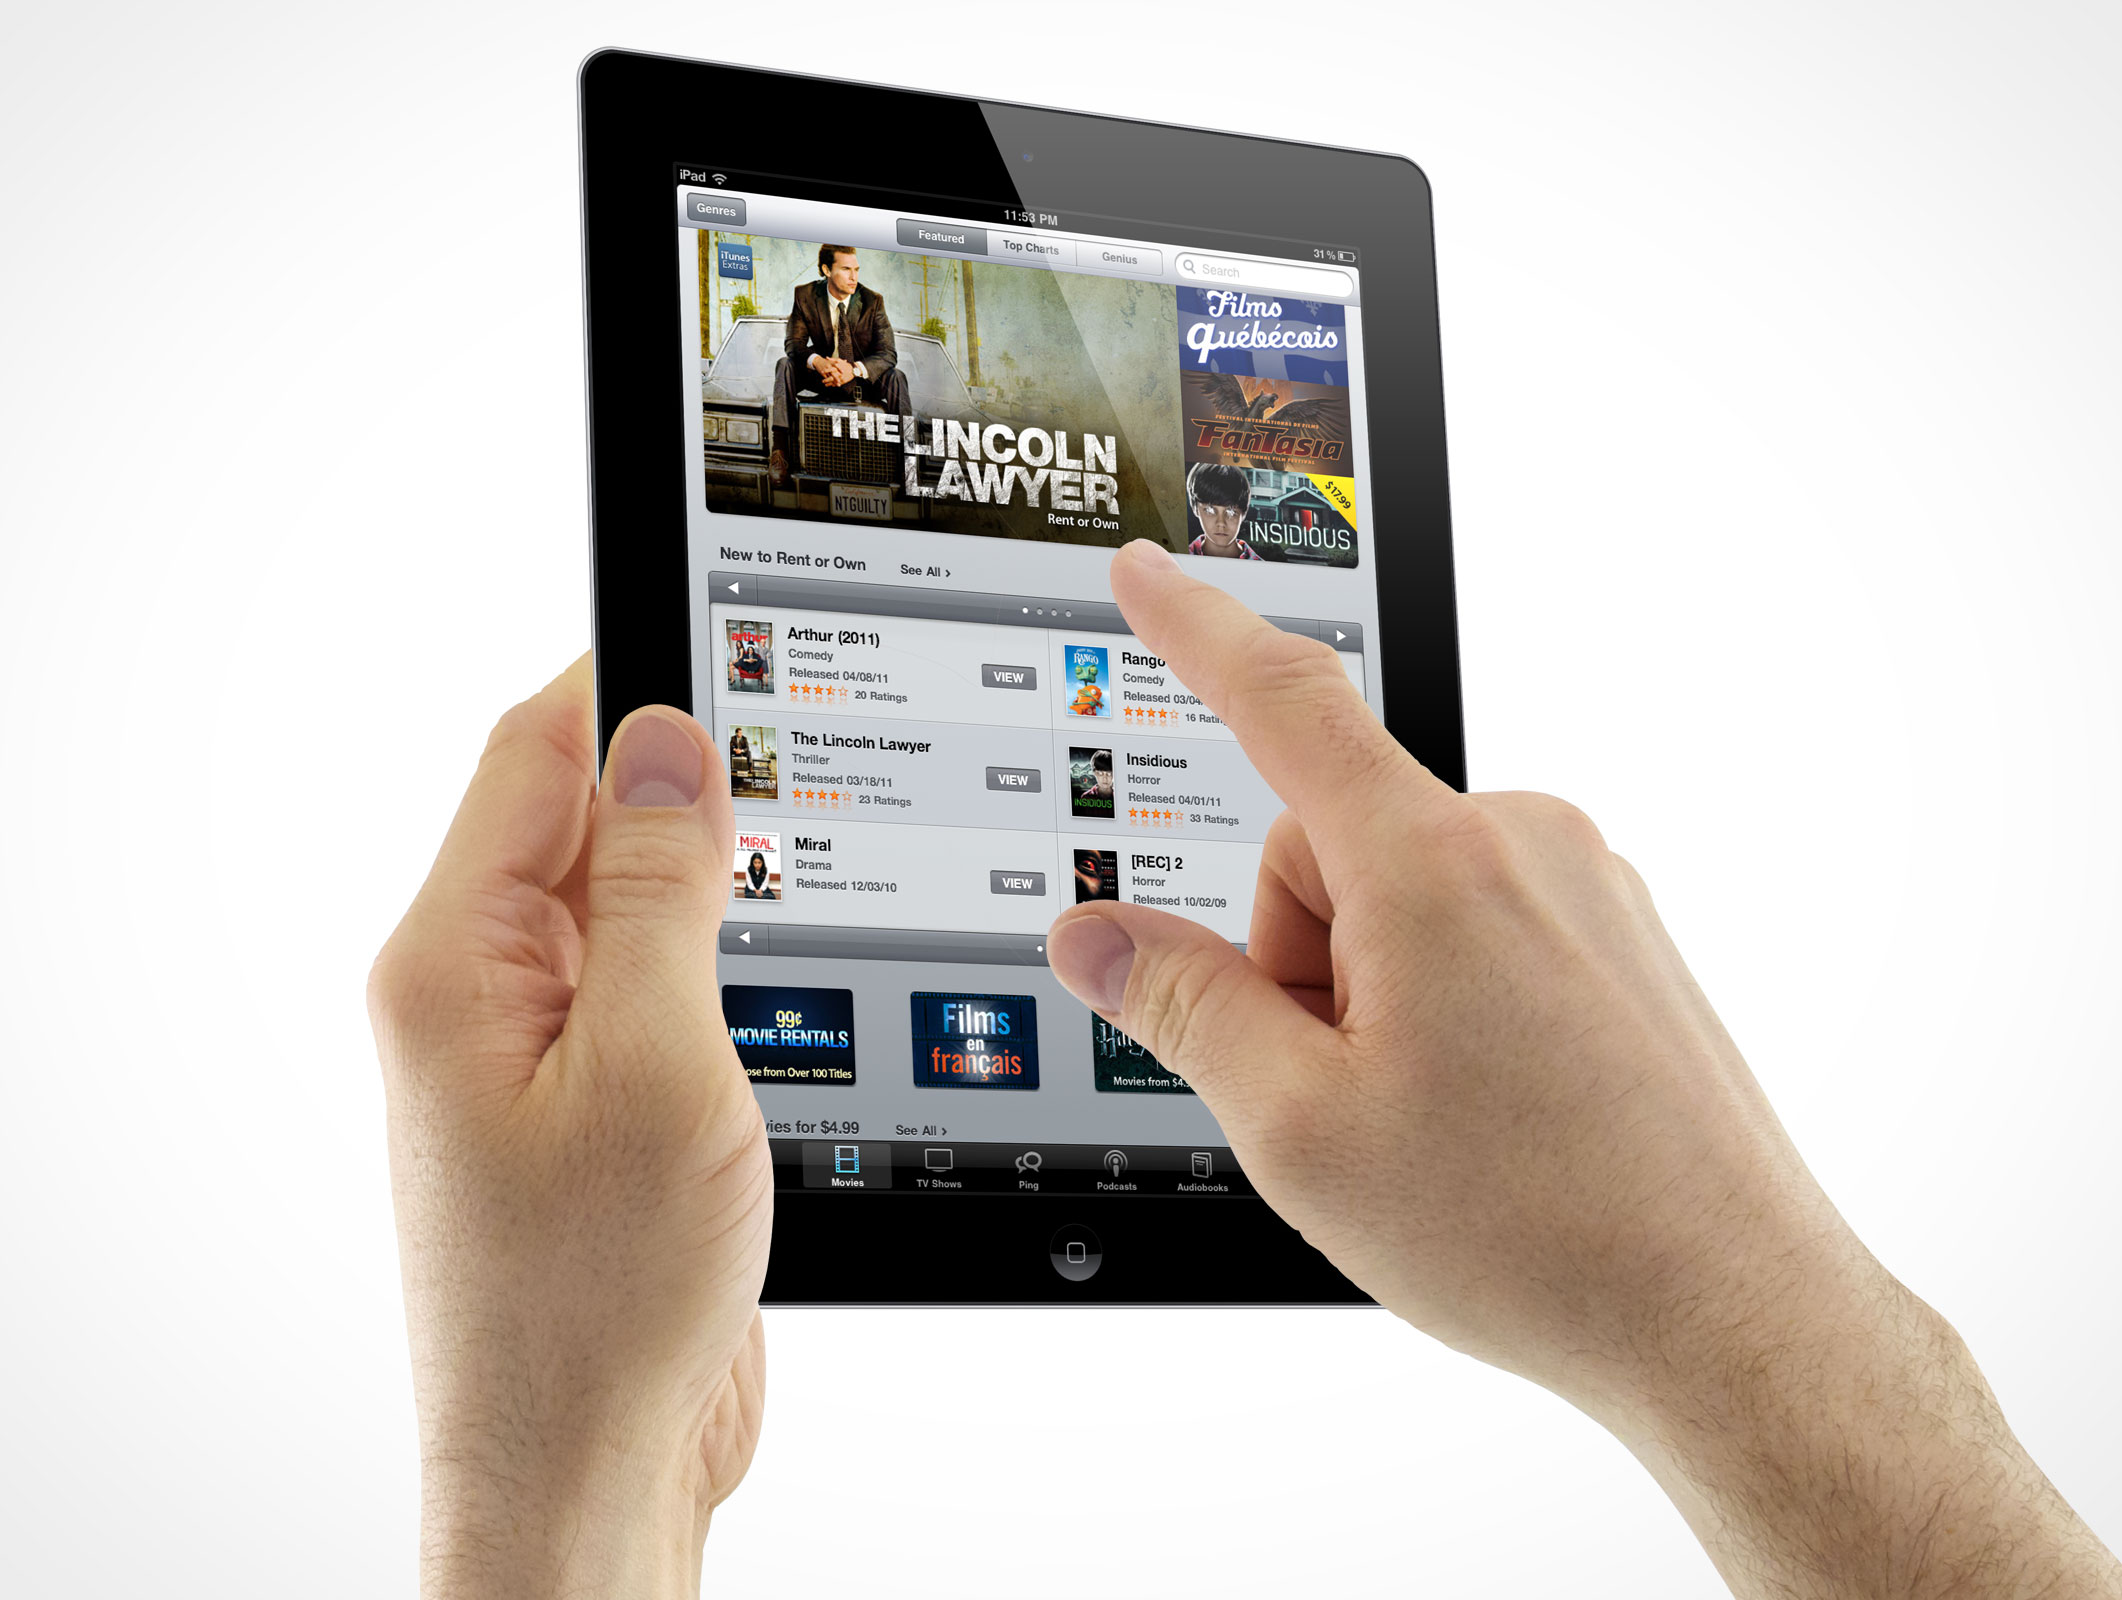 iPad 3 Multi-Touch Gestures Holding Pointing Male Hands